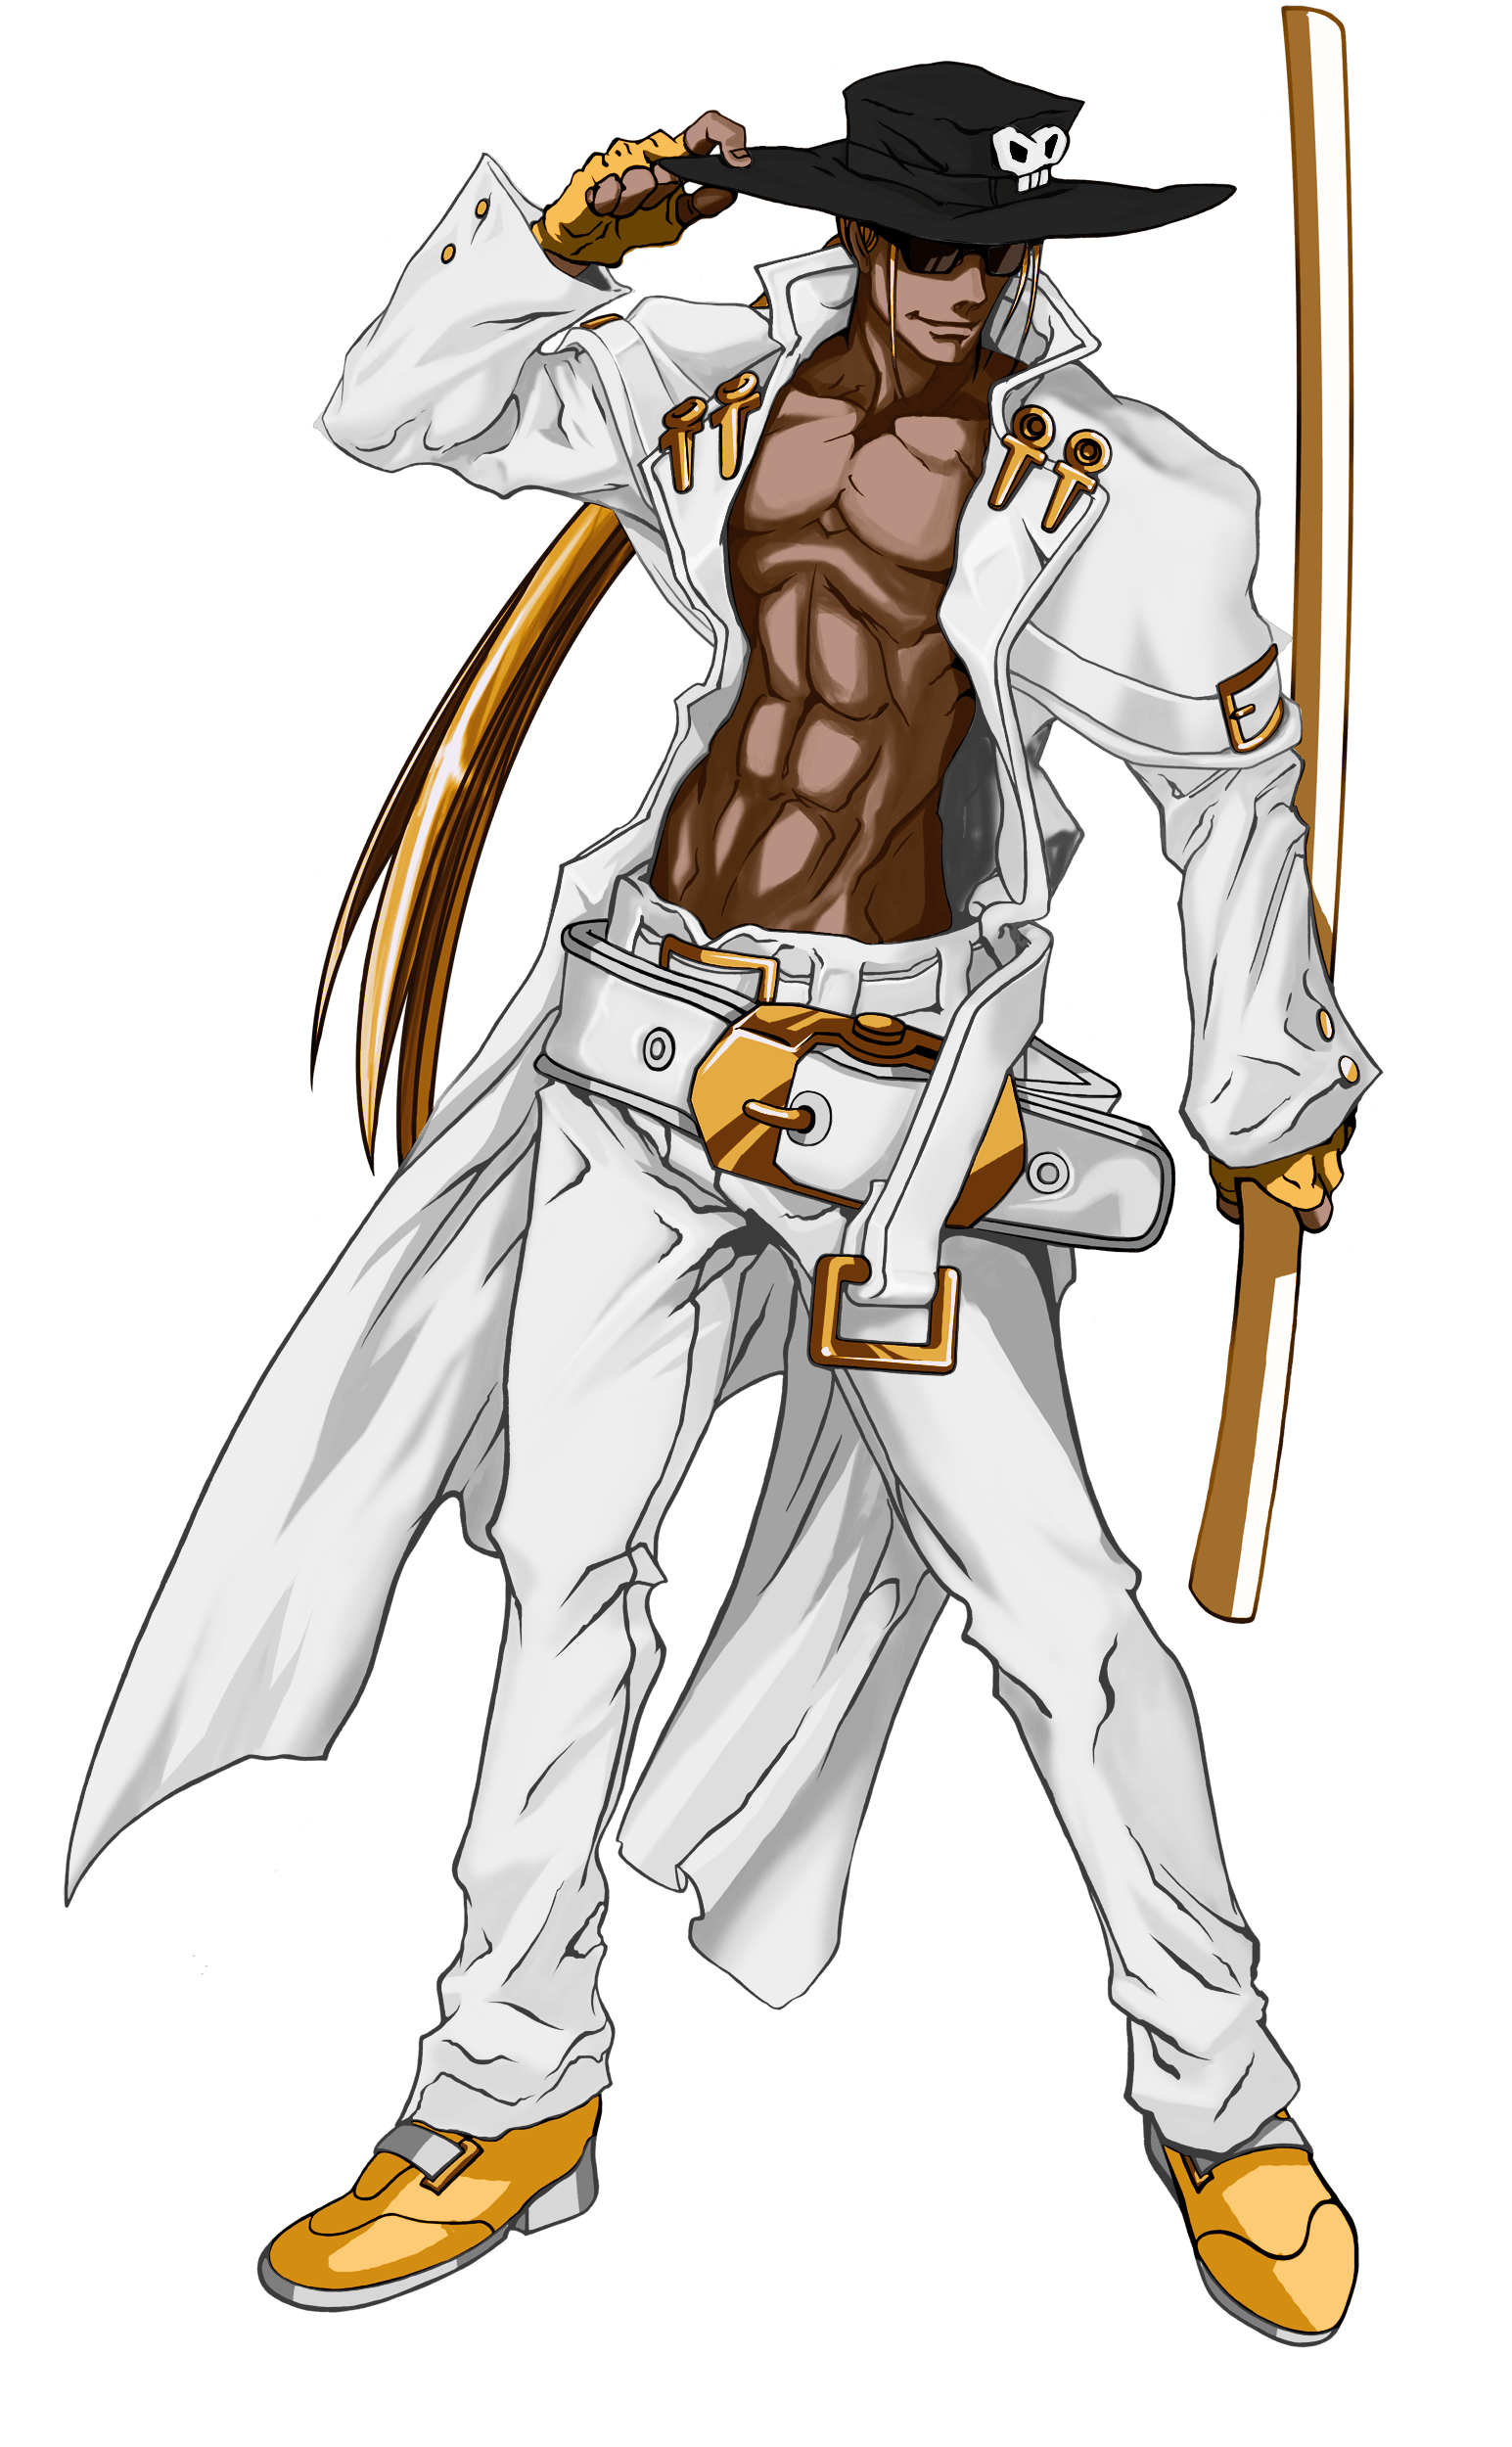 Guilty Gear: Johnny Sfondi Wallpapers hd